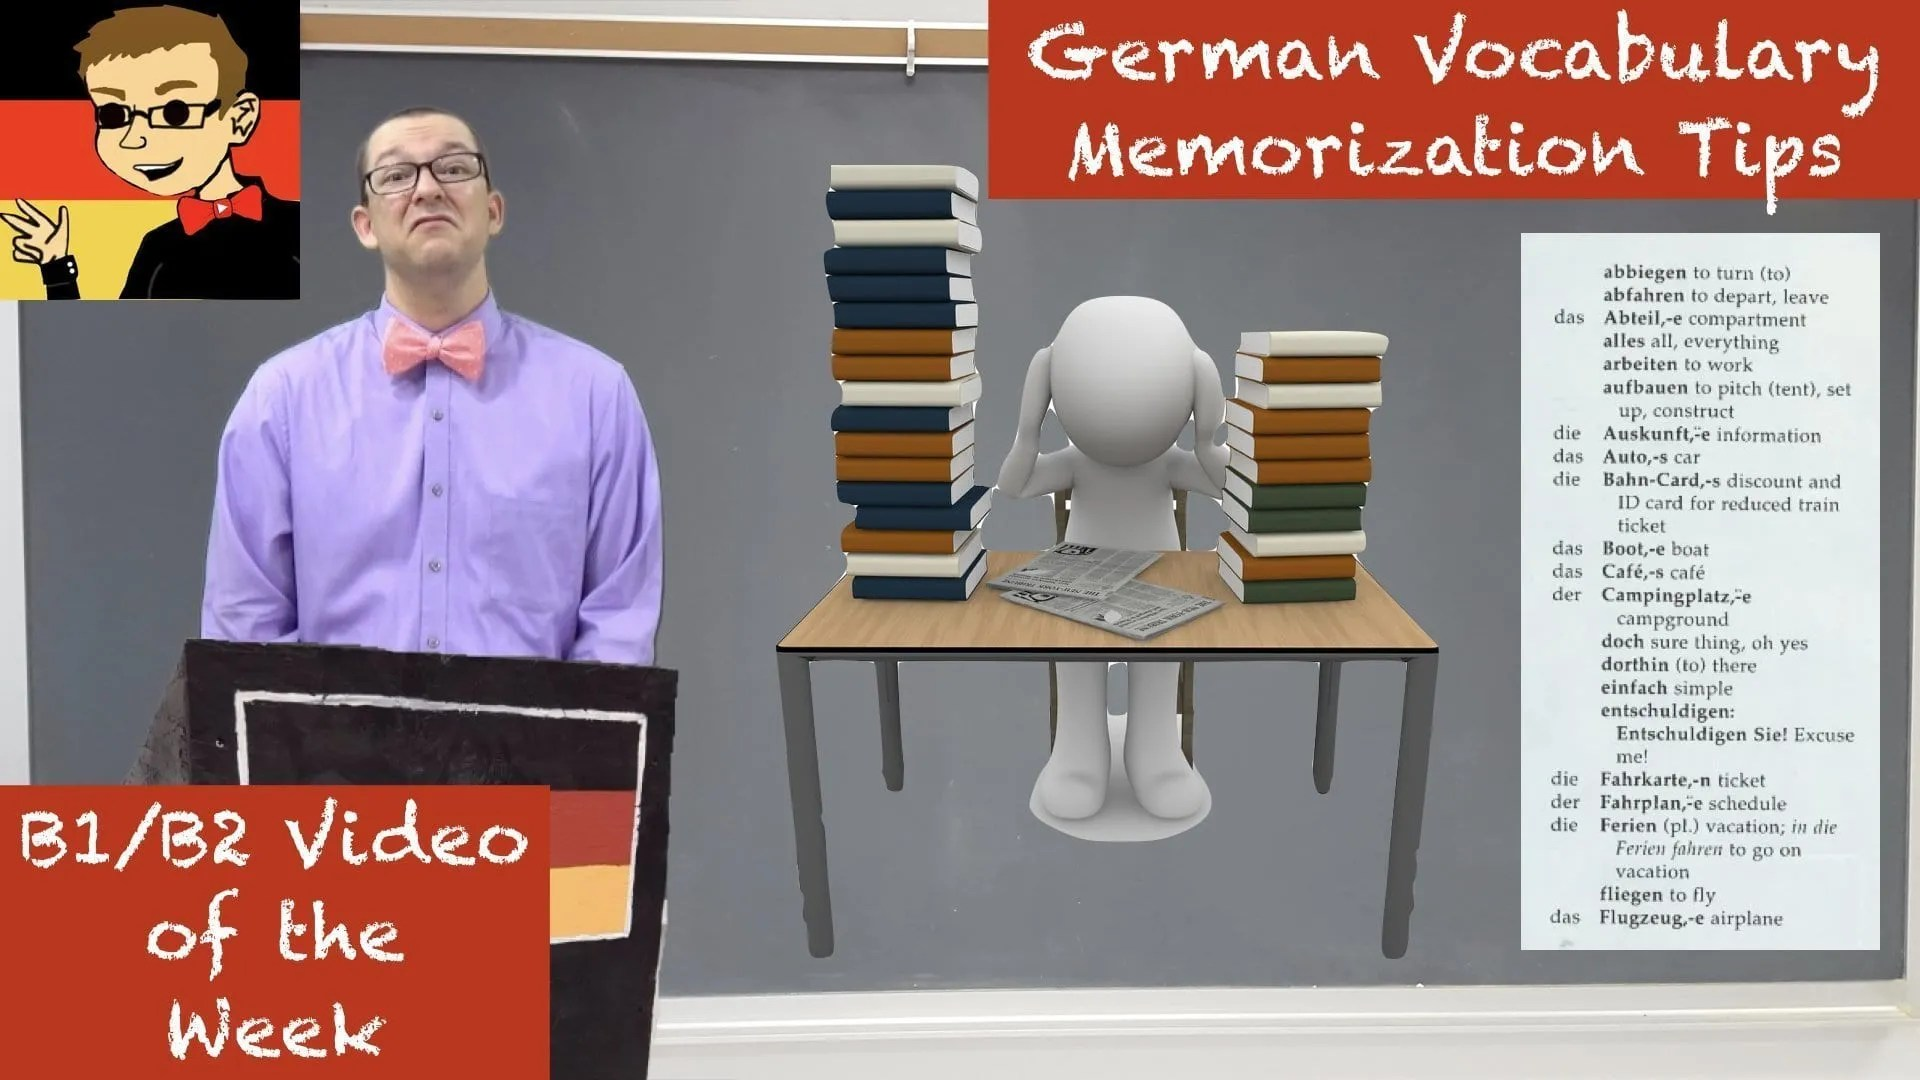 German Vocabulary Memorization Tips